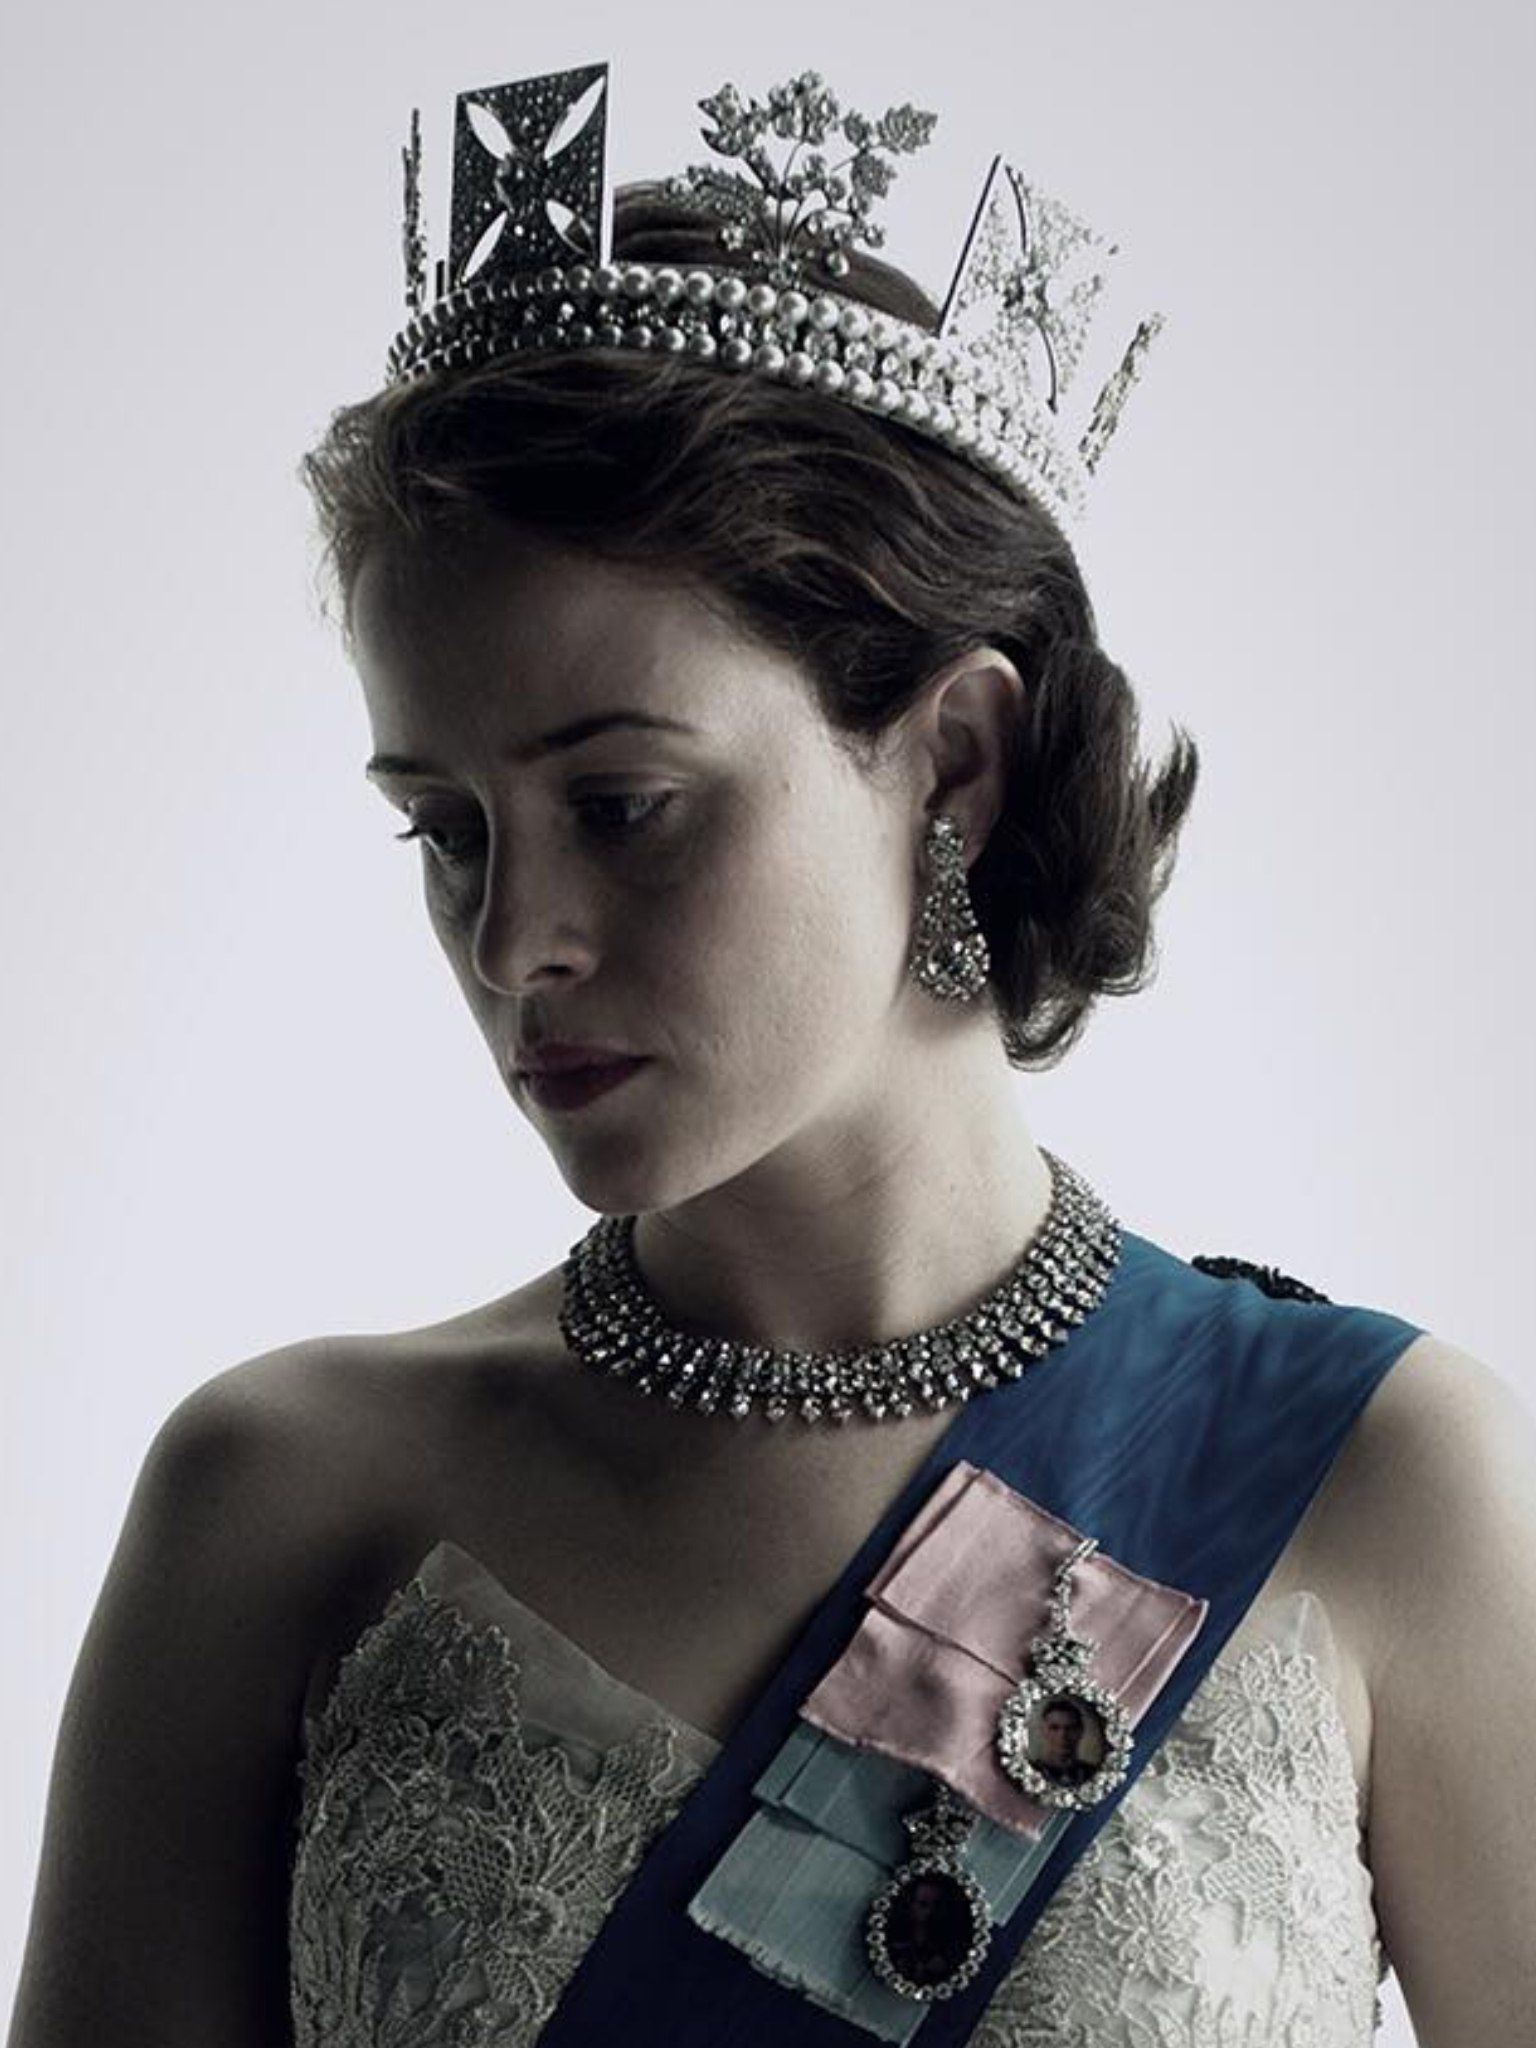 Claire Foy (born 1984) nudes (36 fotos) Hacked, Twitter, see through